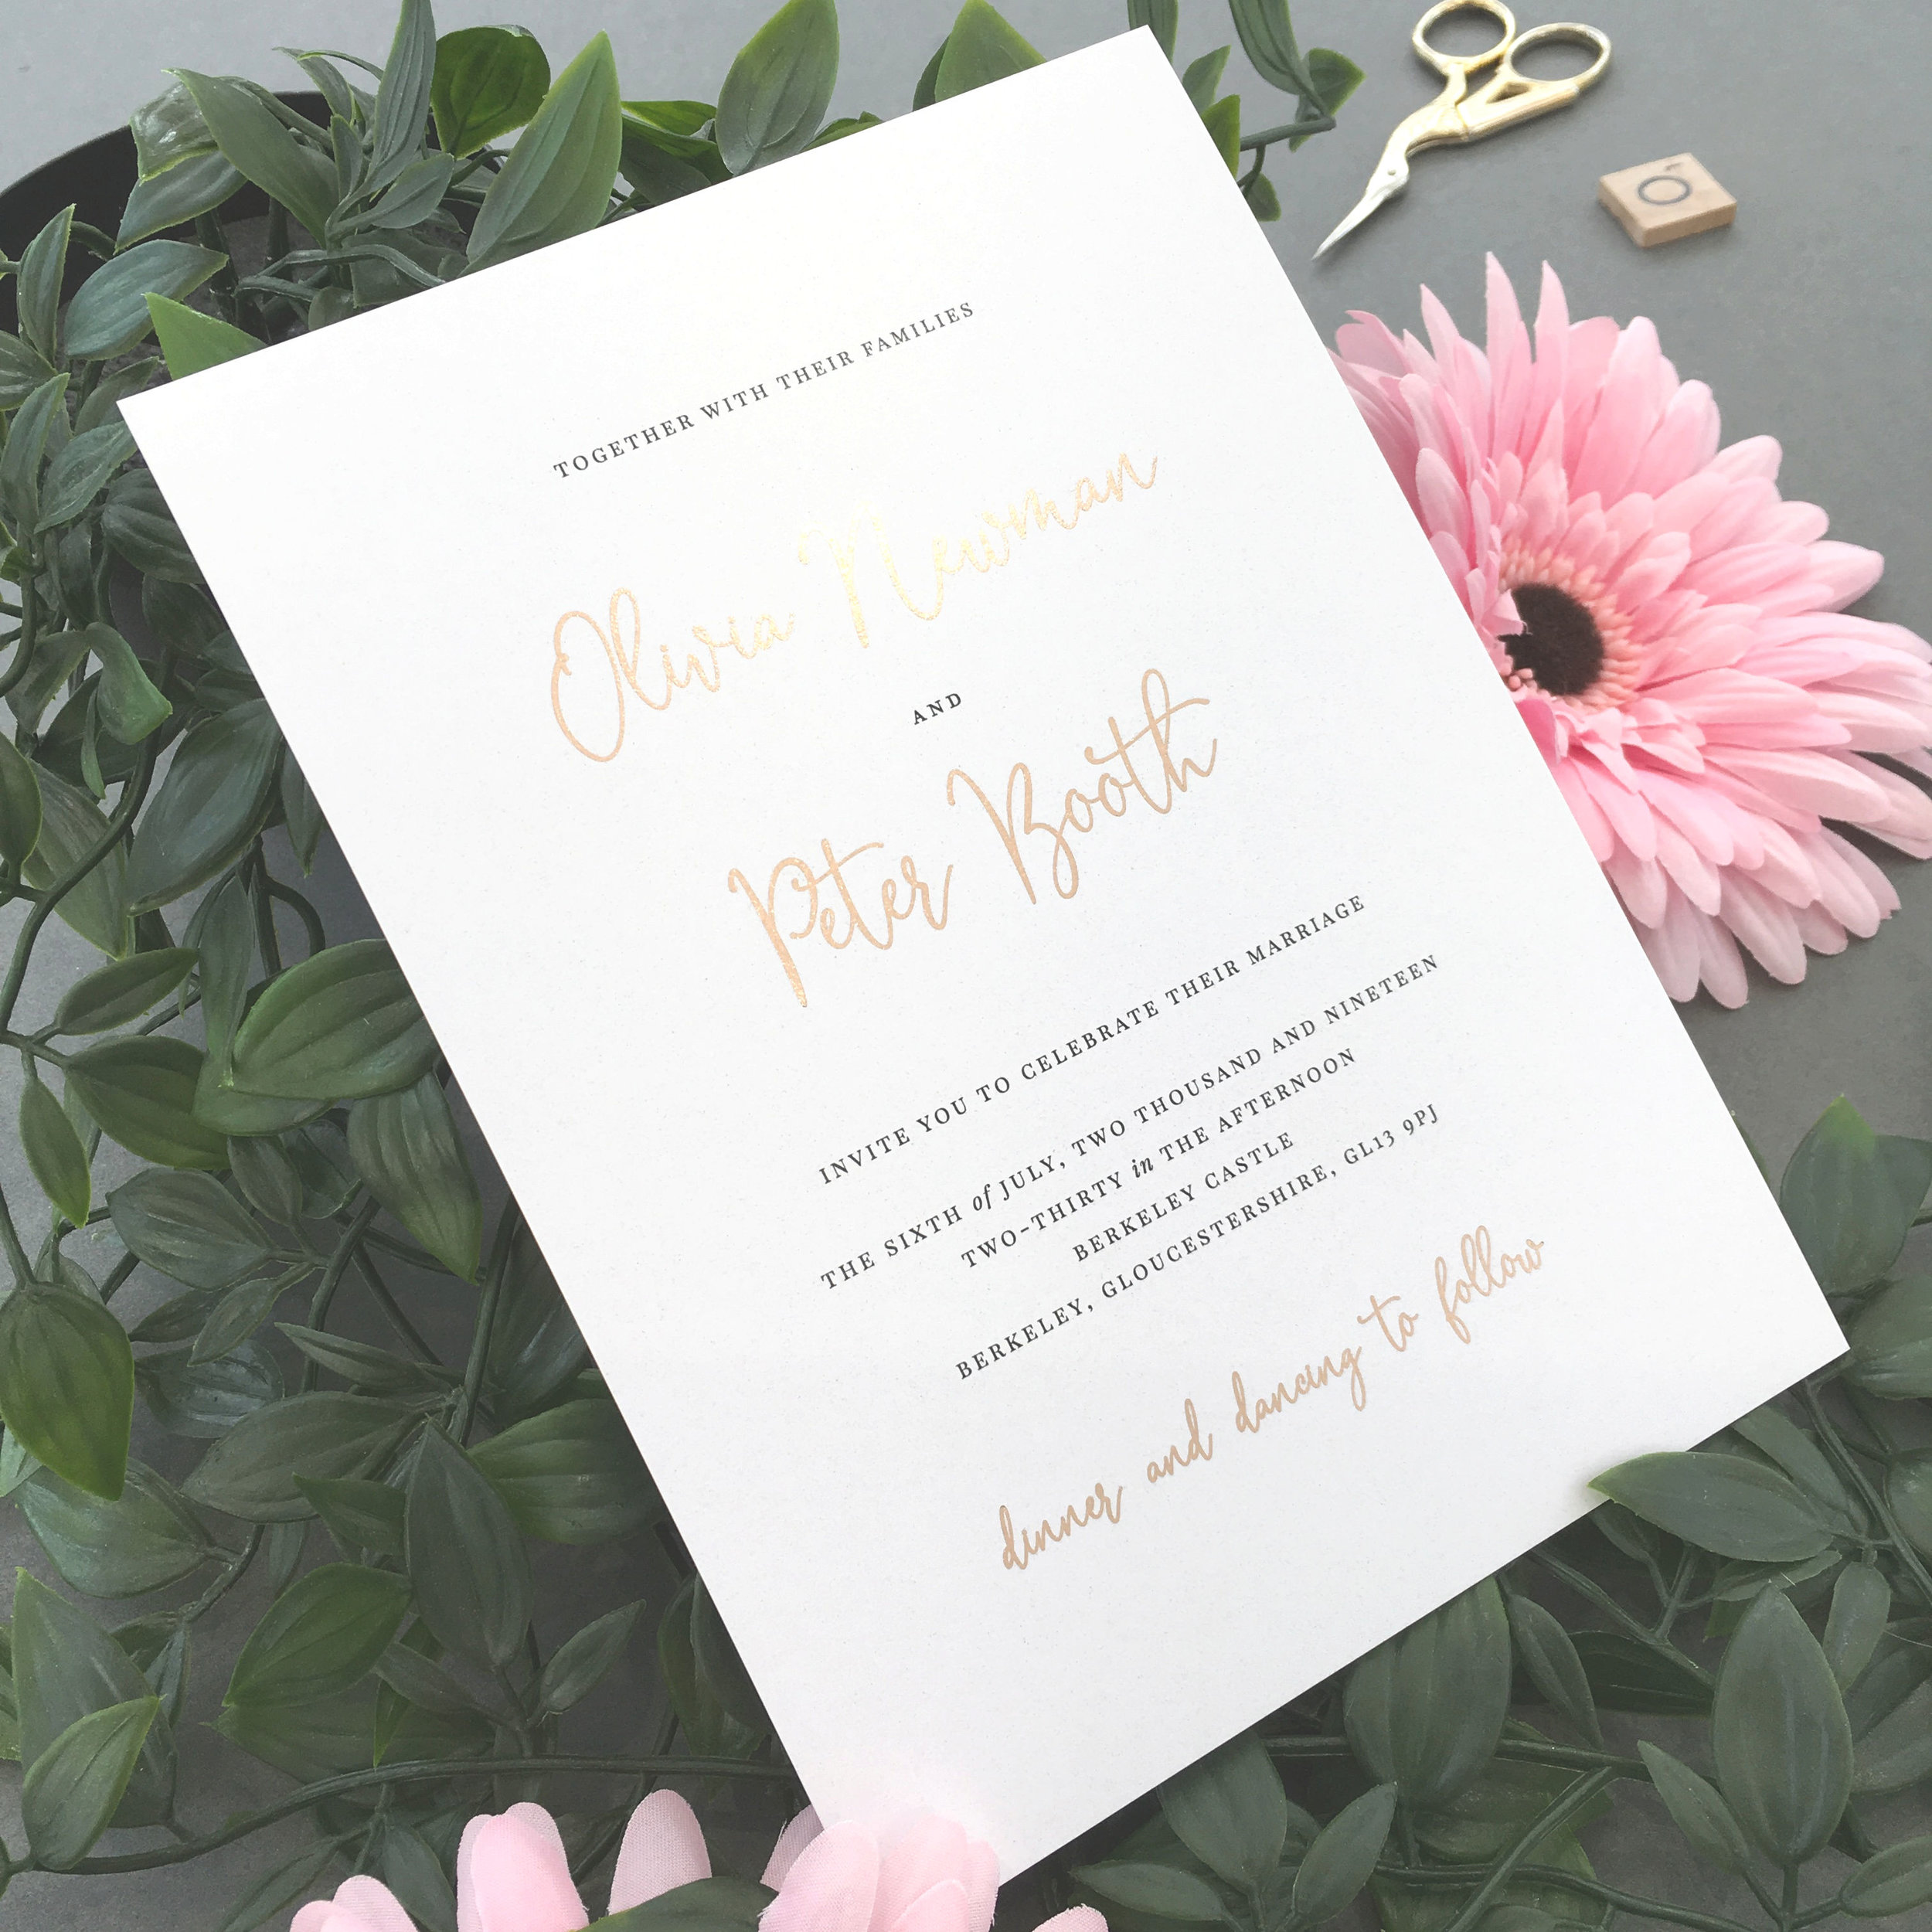 Foiled Invitations -